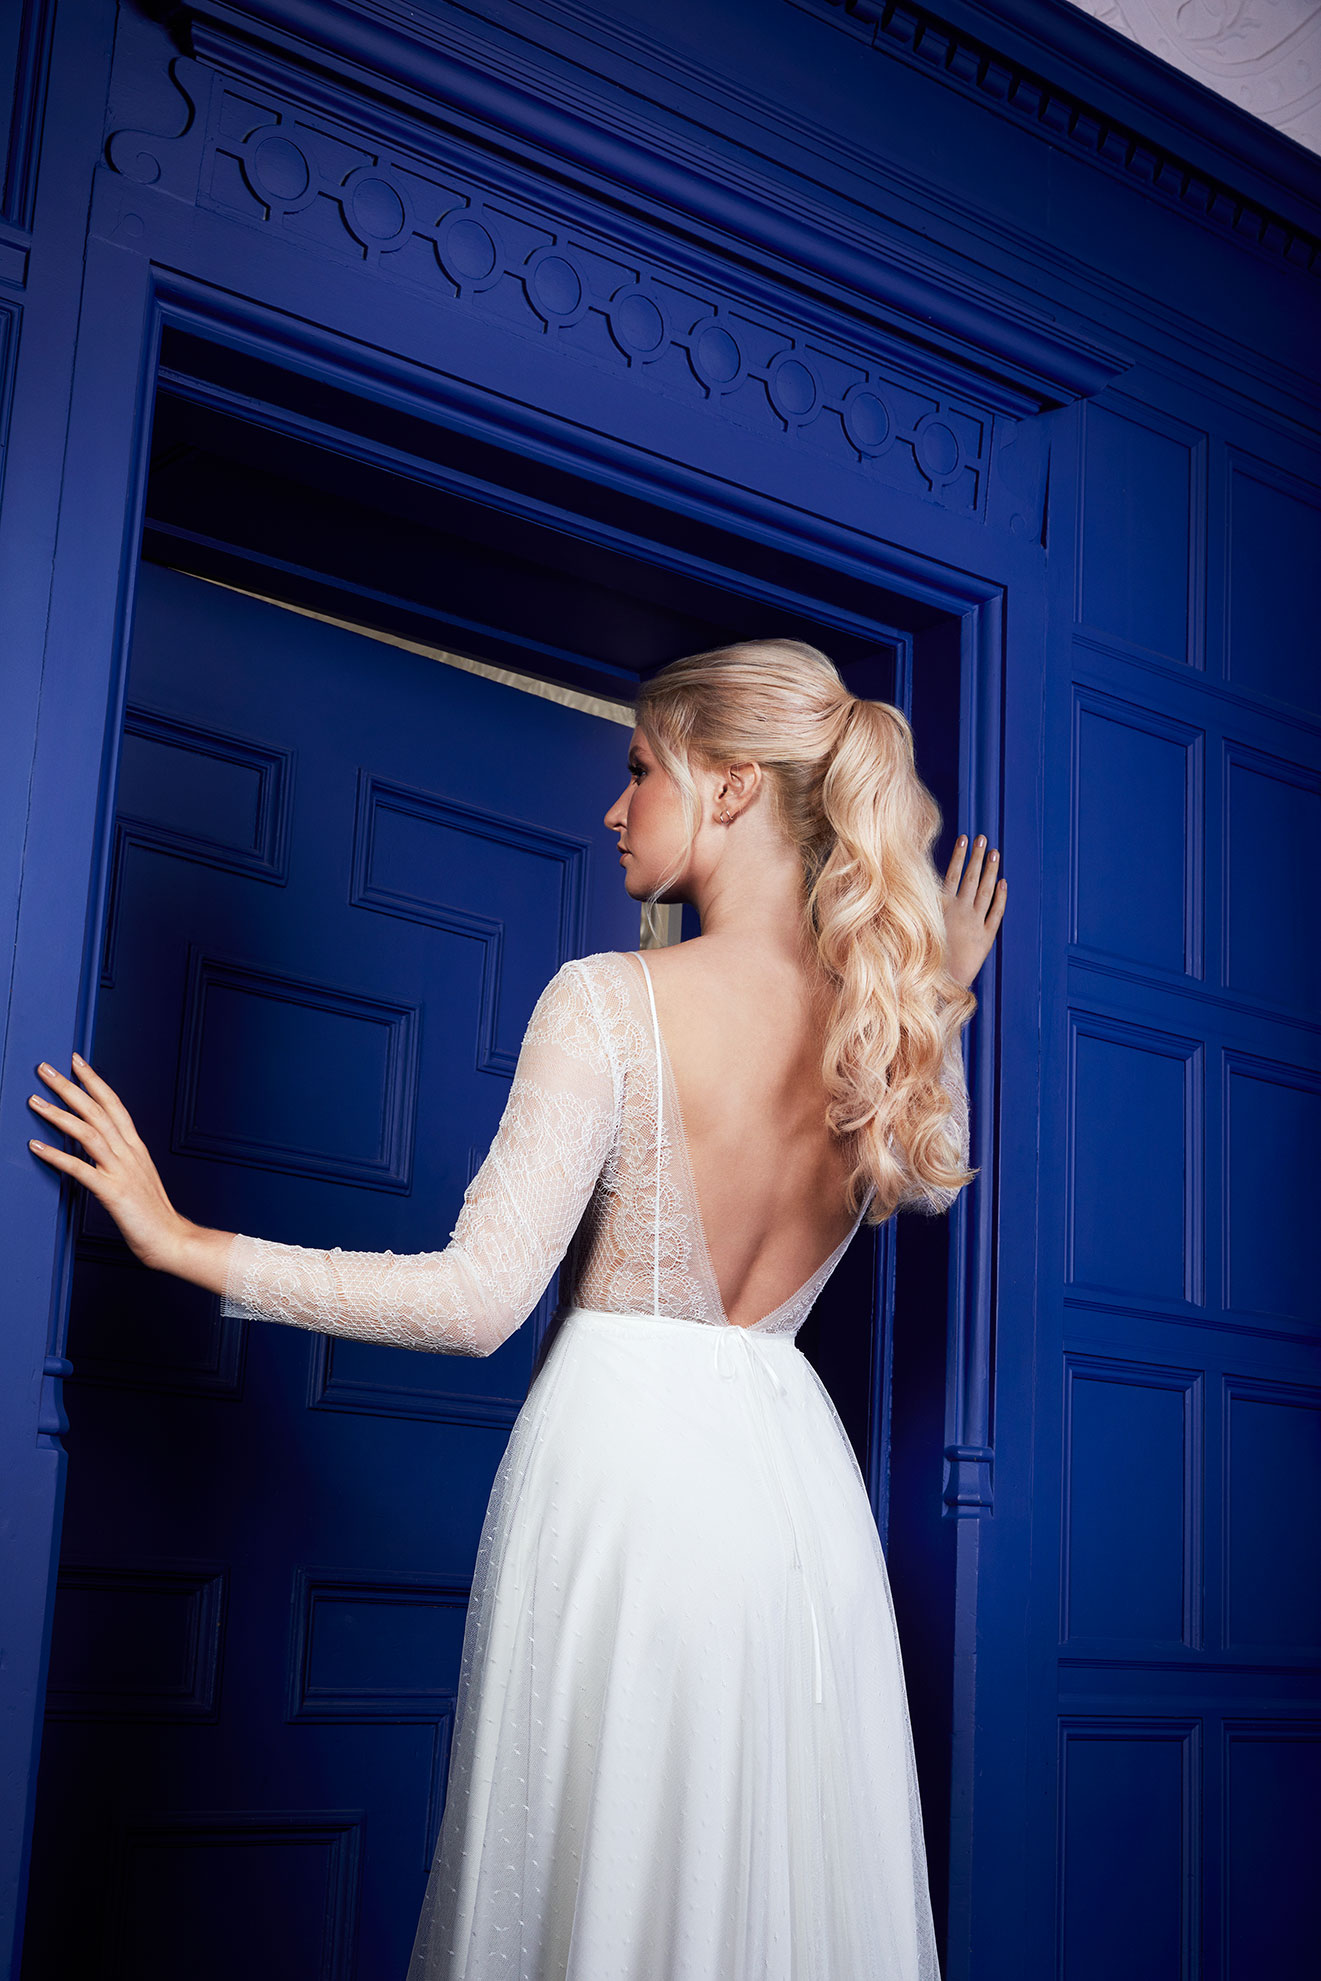 Bridal hair extension campaign - ponytail